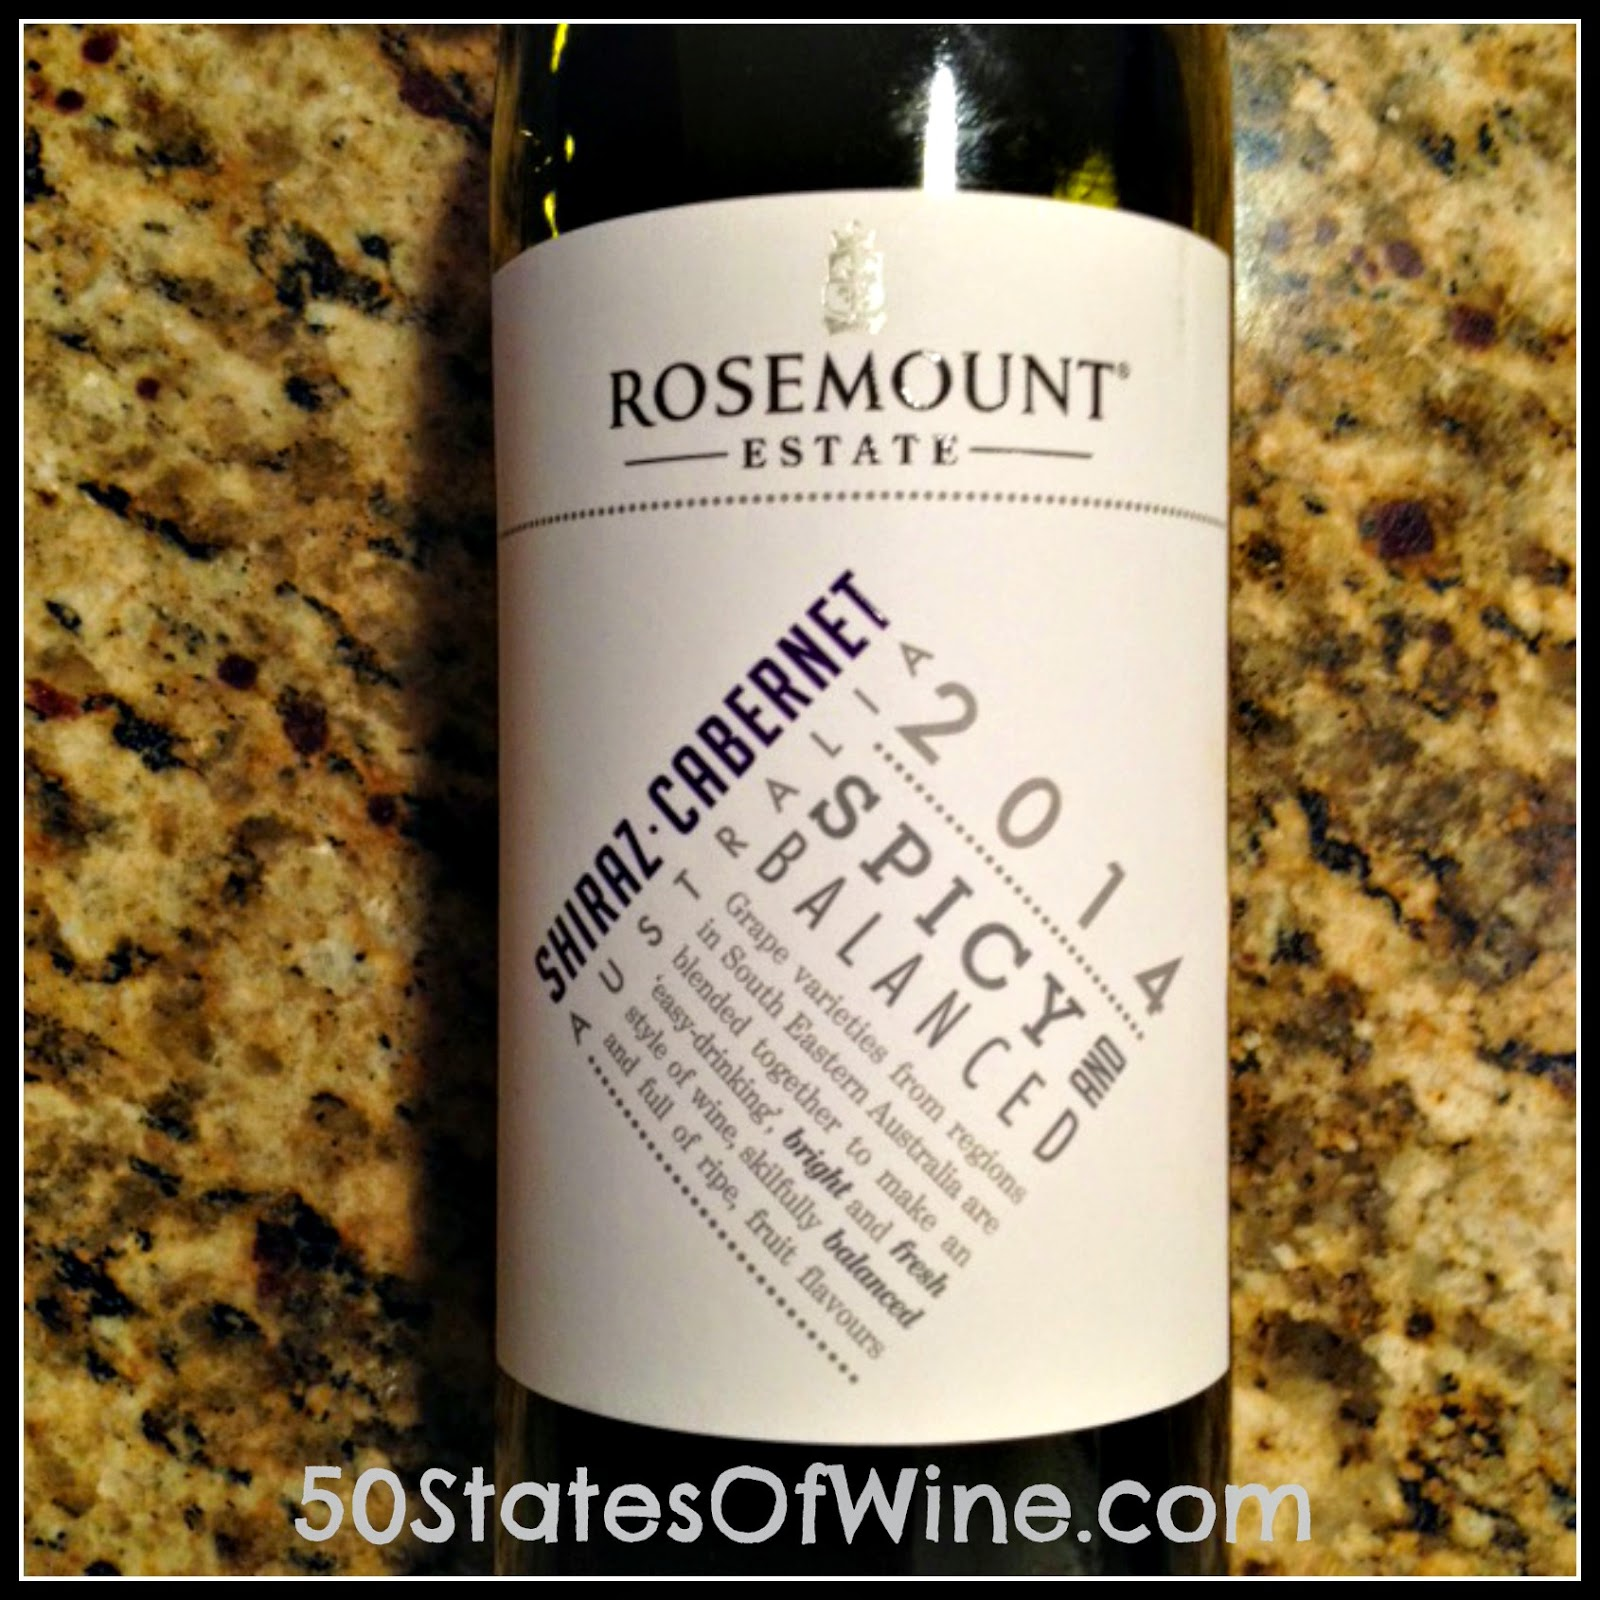 Rosemount Estate 2014 Shiraz Cabernet